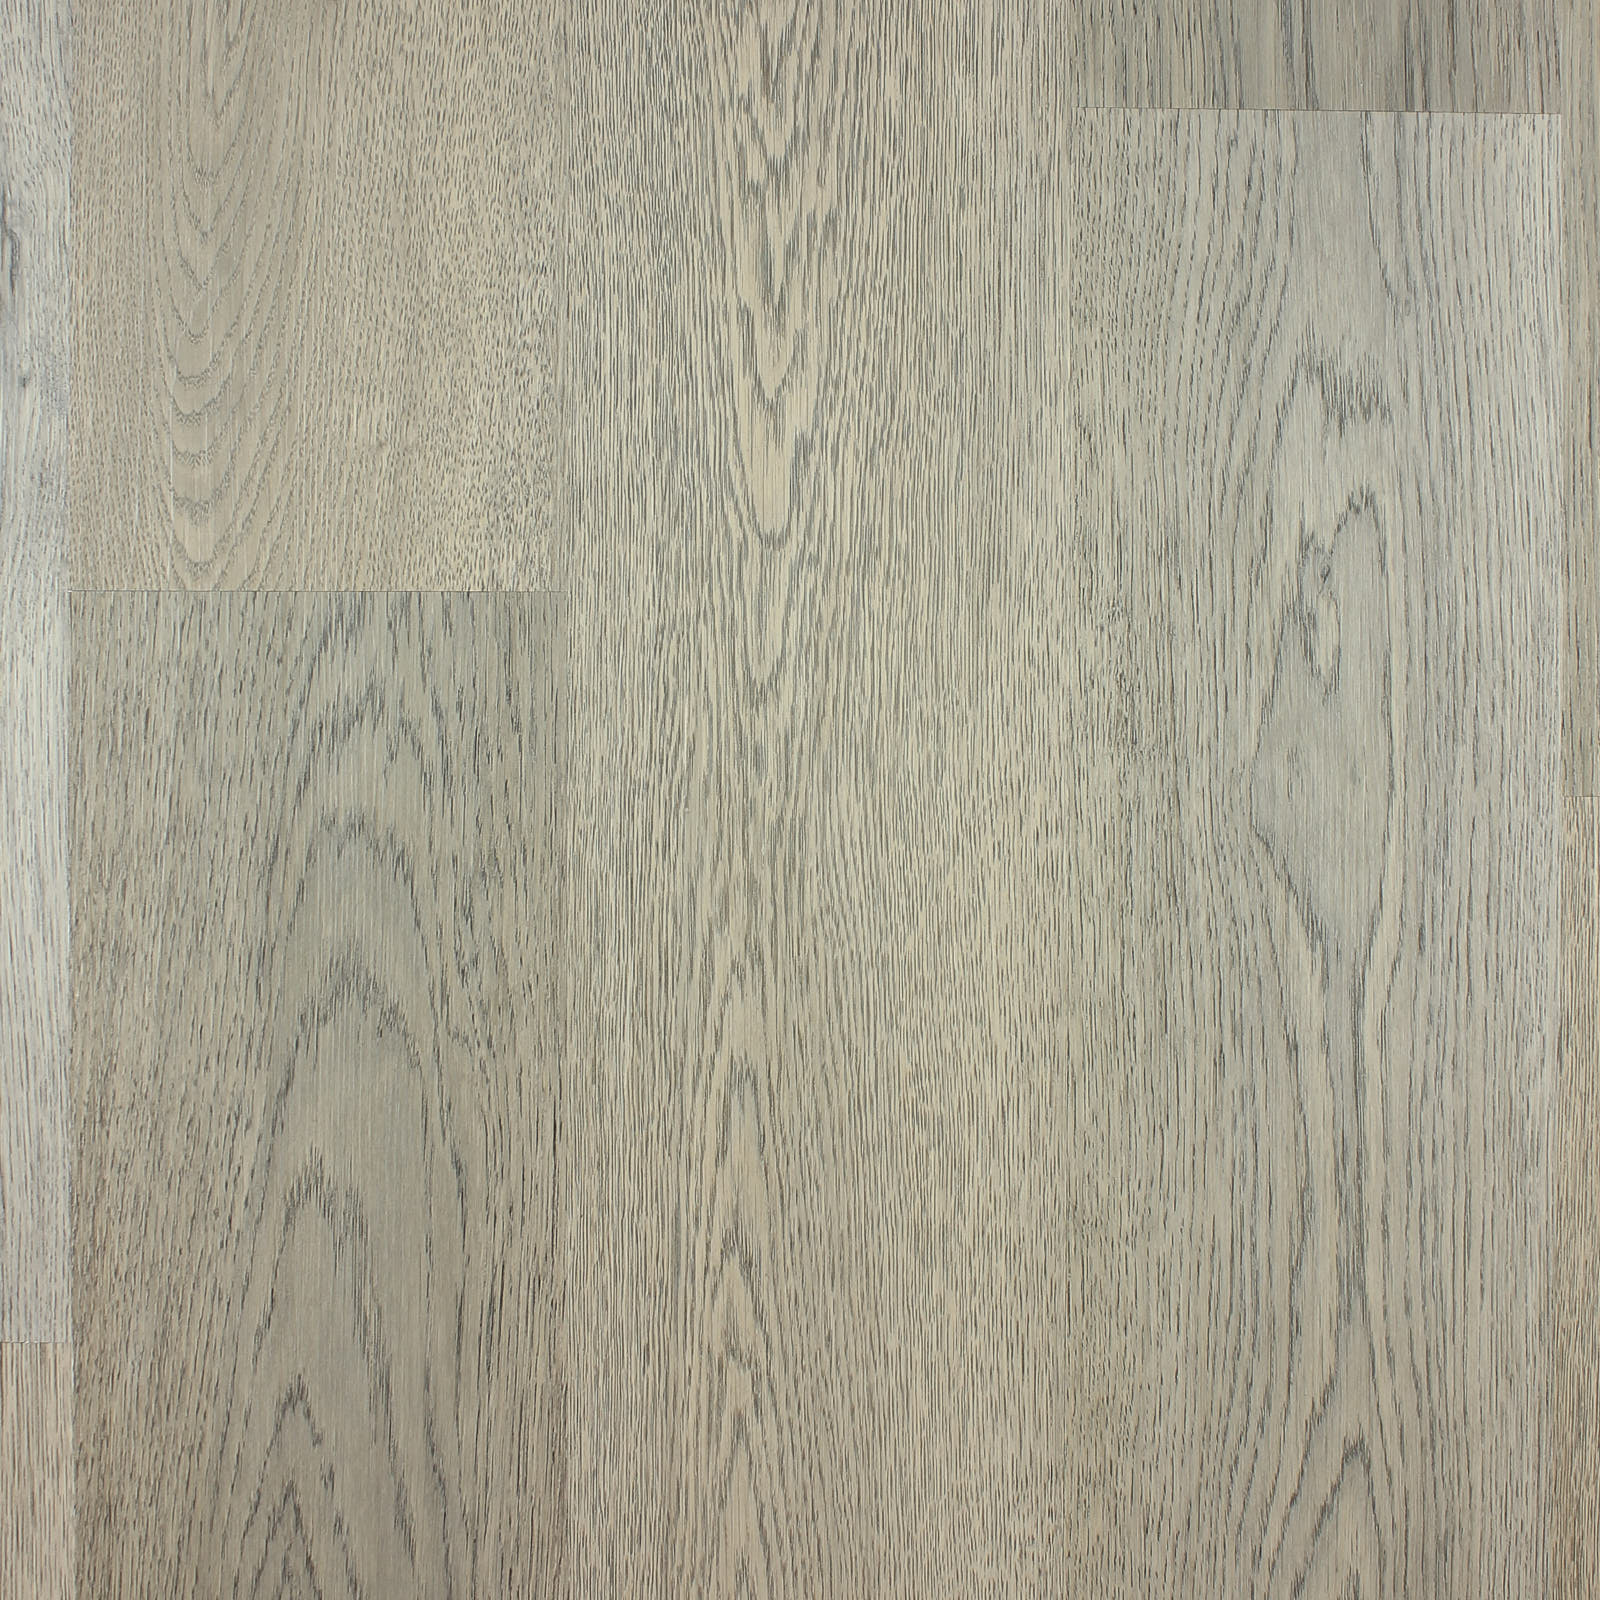 Landon Plank Grizzly Engineered Vinyl Plank Flooring